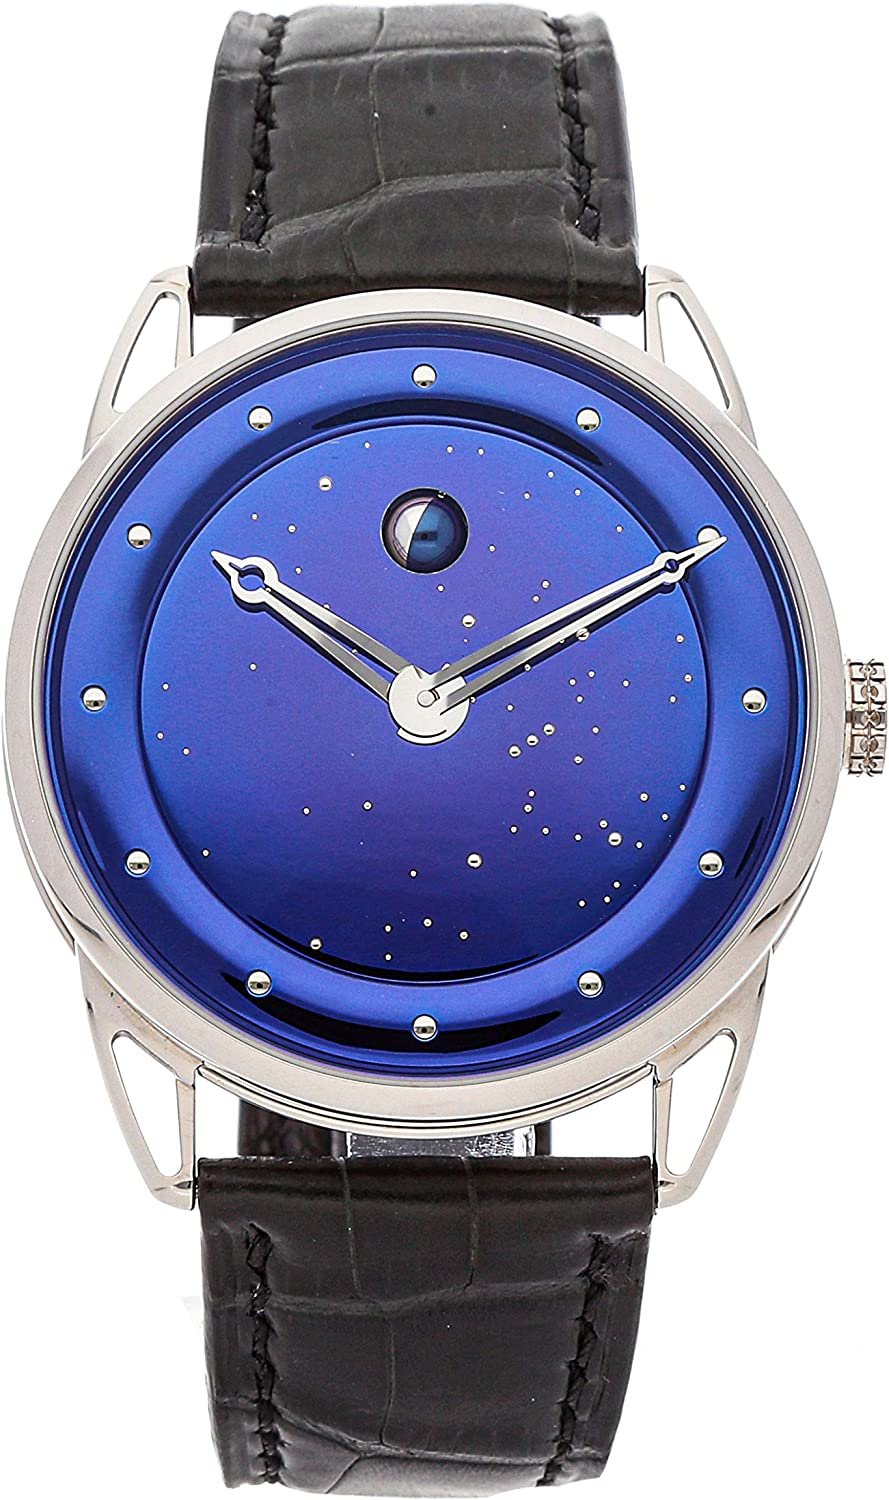 De Bethune DB25 Mechanical (Hand-Winding) Blue Dial Mens Watch DB25LWS3V2 (Certified Pre-Owned)